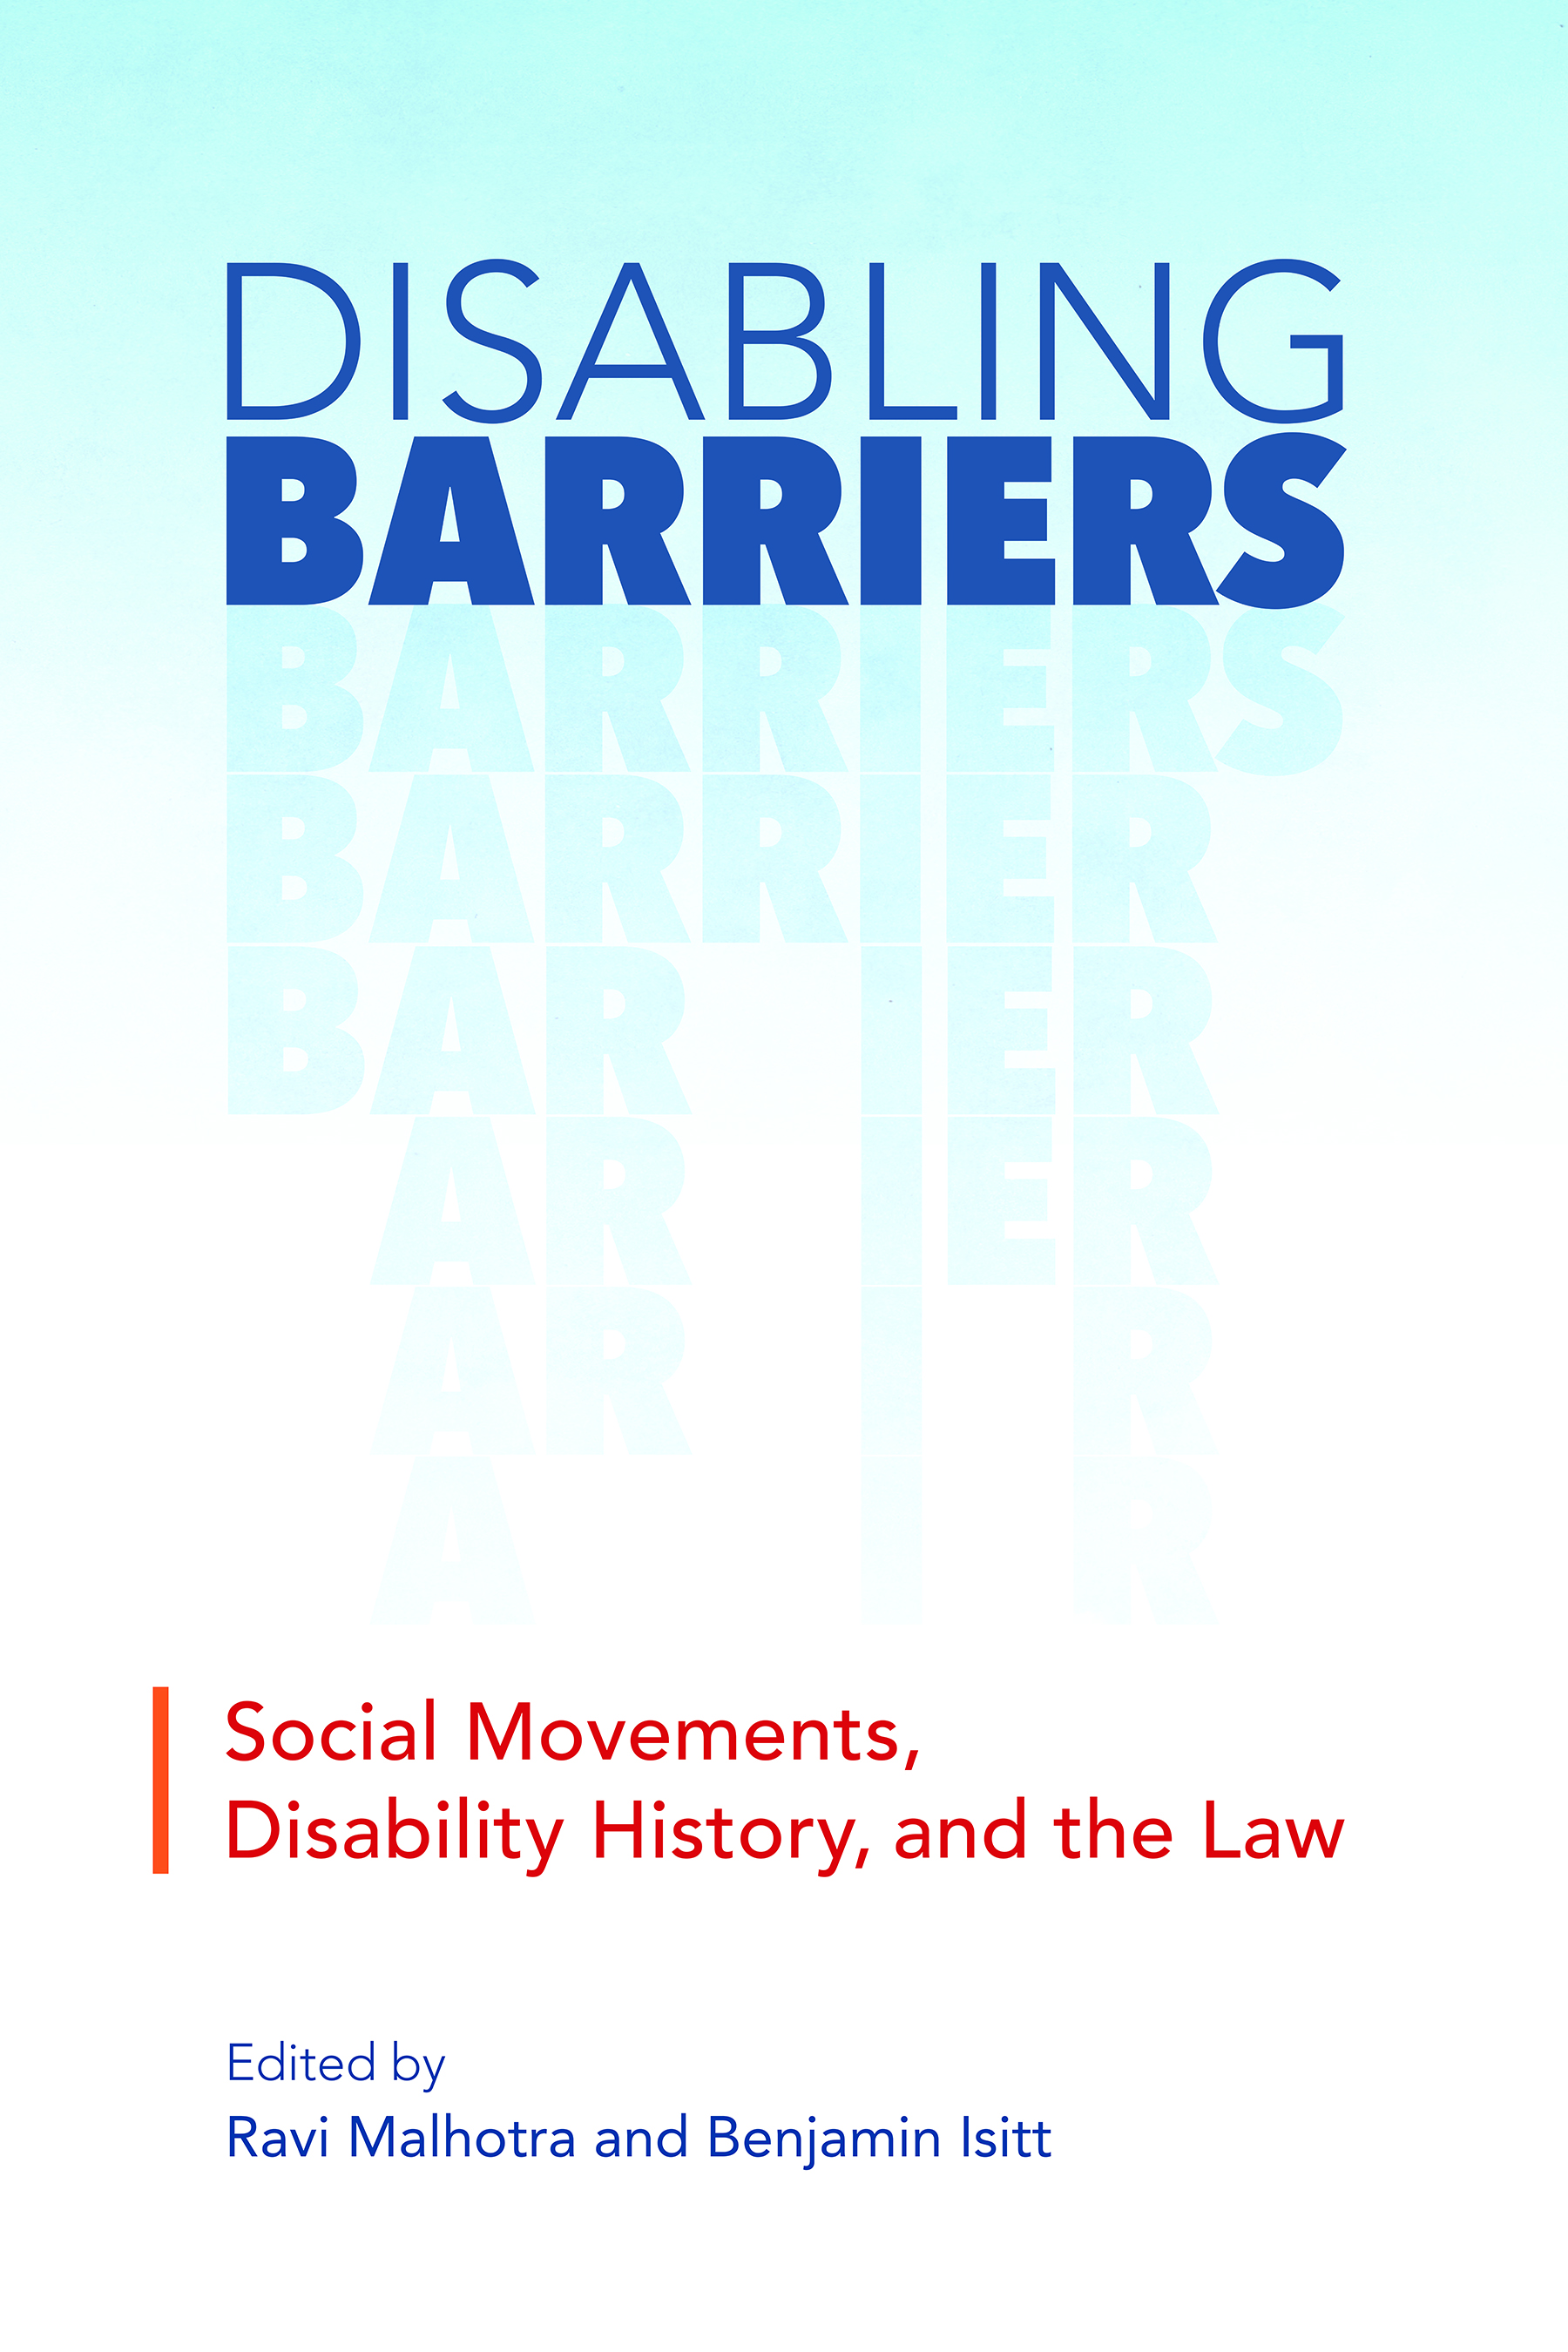 Book - Disabling Barriers: Social Movements, Disability History and the Law